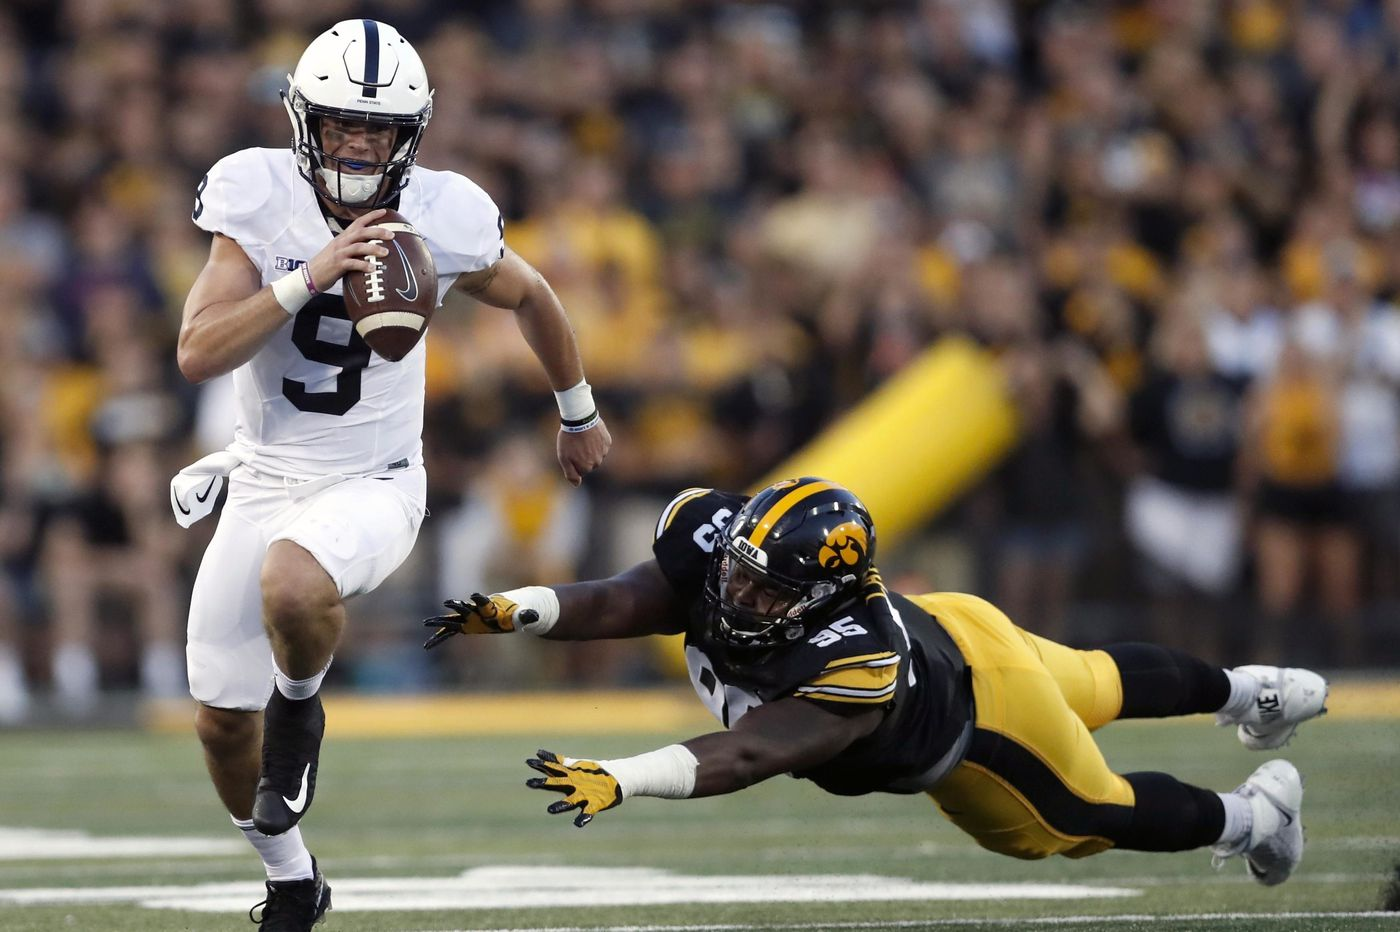 Penn State-Iowa preview: Now the Big Ten grind really starts